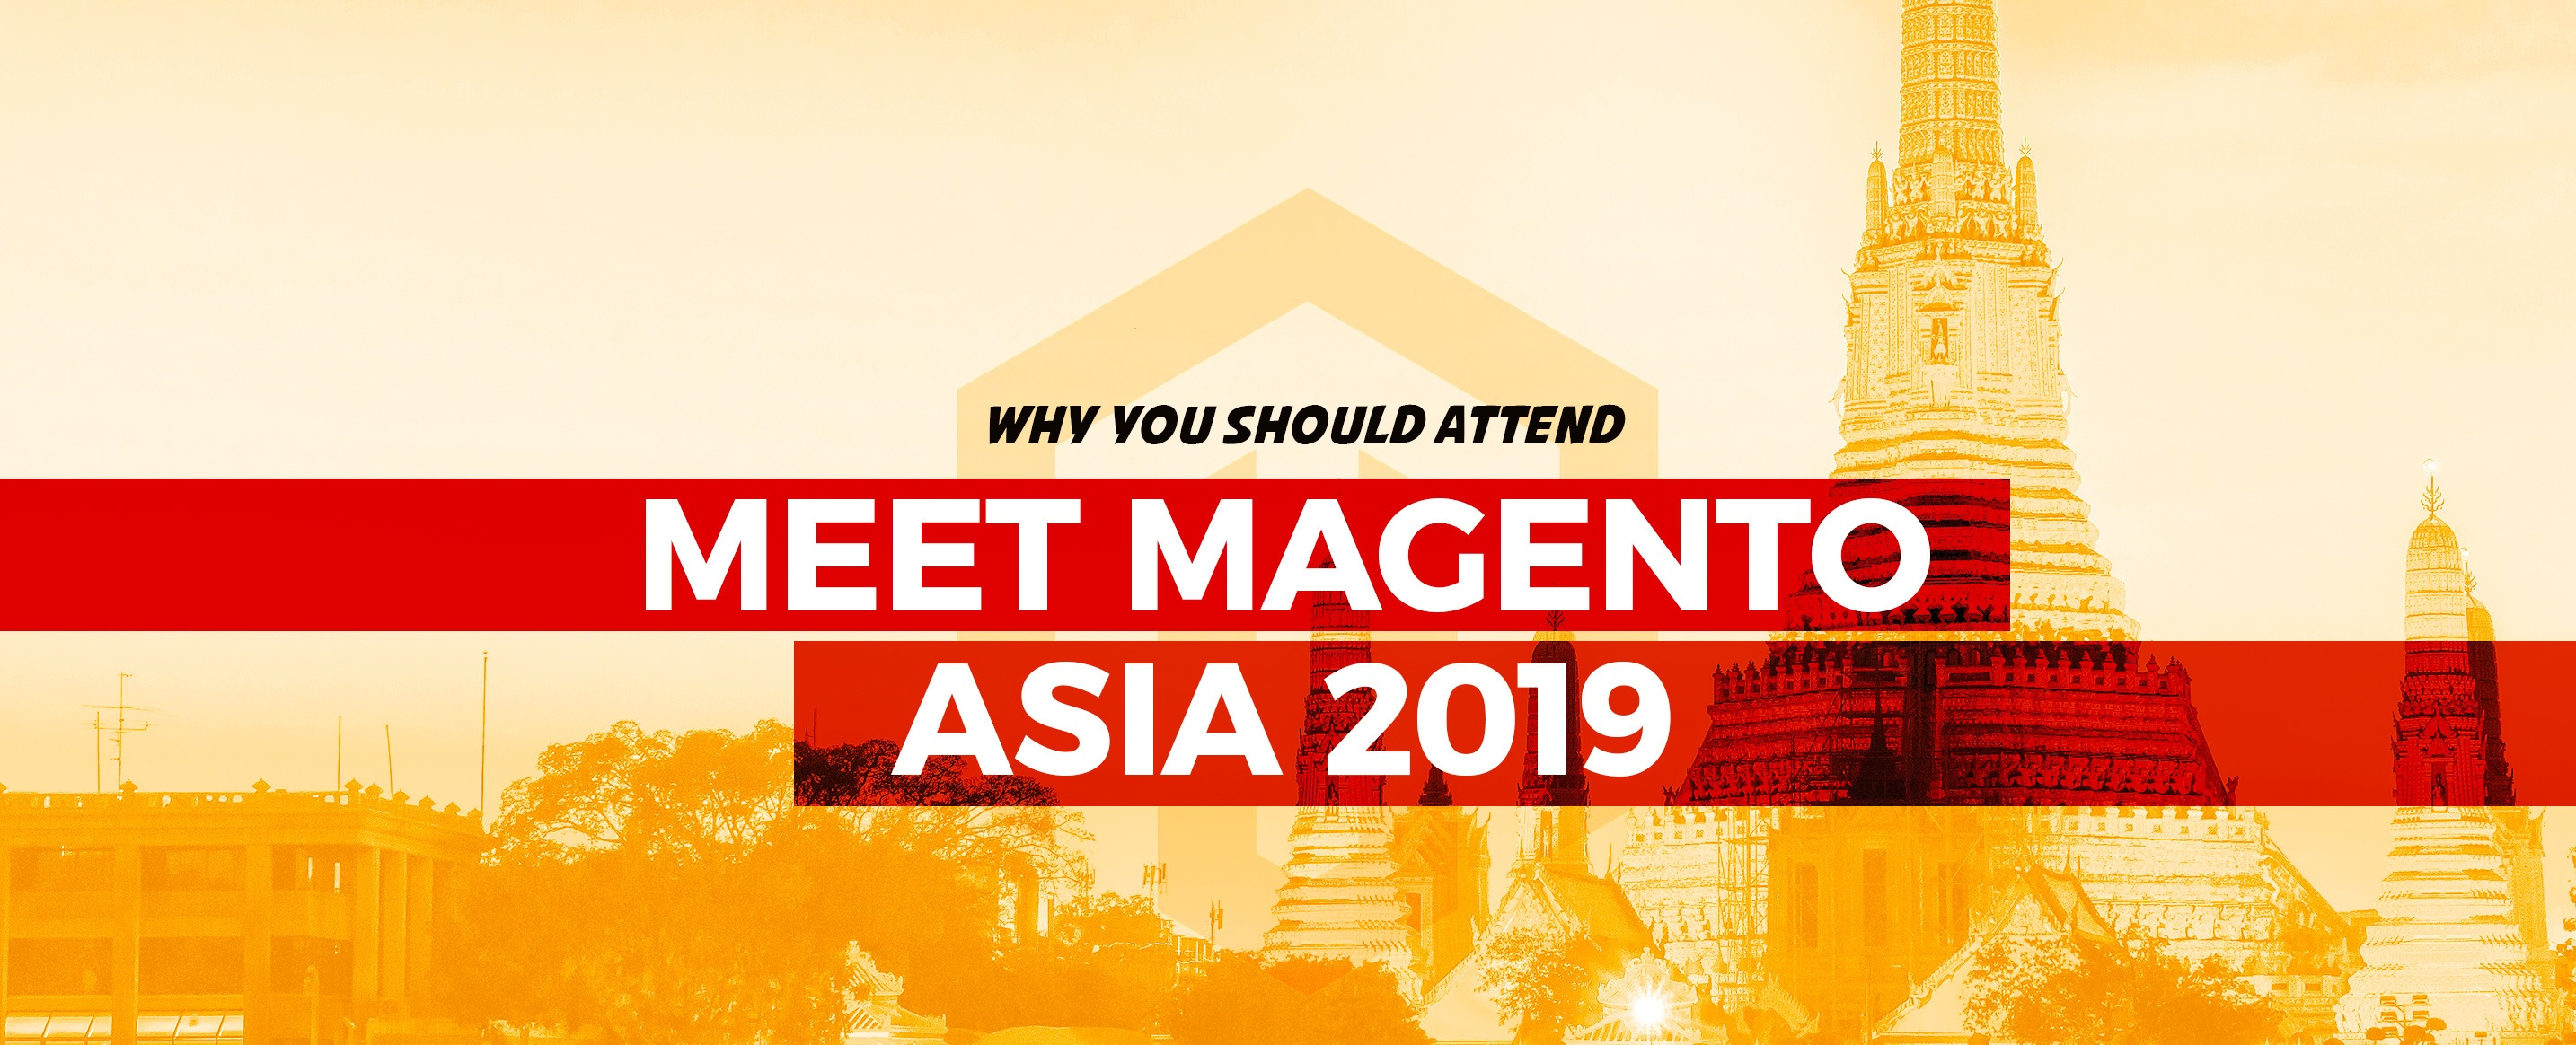 why-you-should-attend-Meet-magento-asia-2019